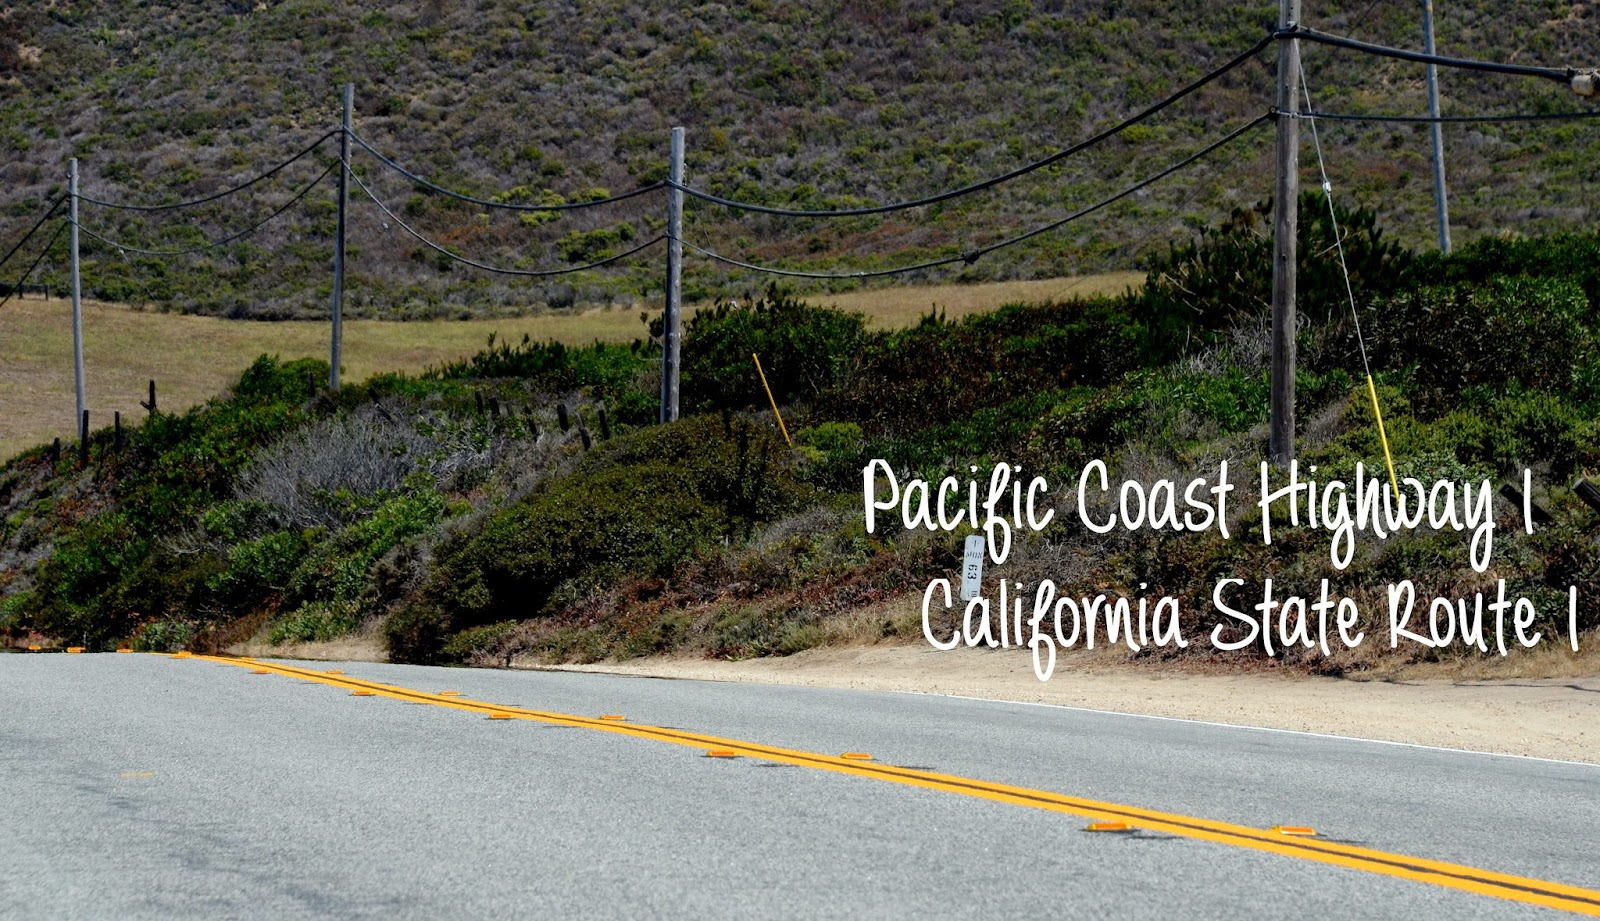 Pacific Coast Highway 1 - California State Route 1 - USA